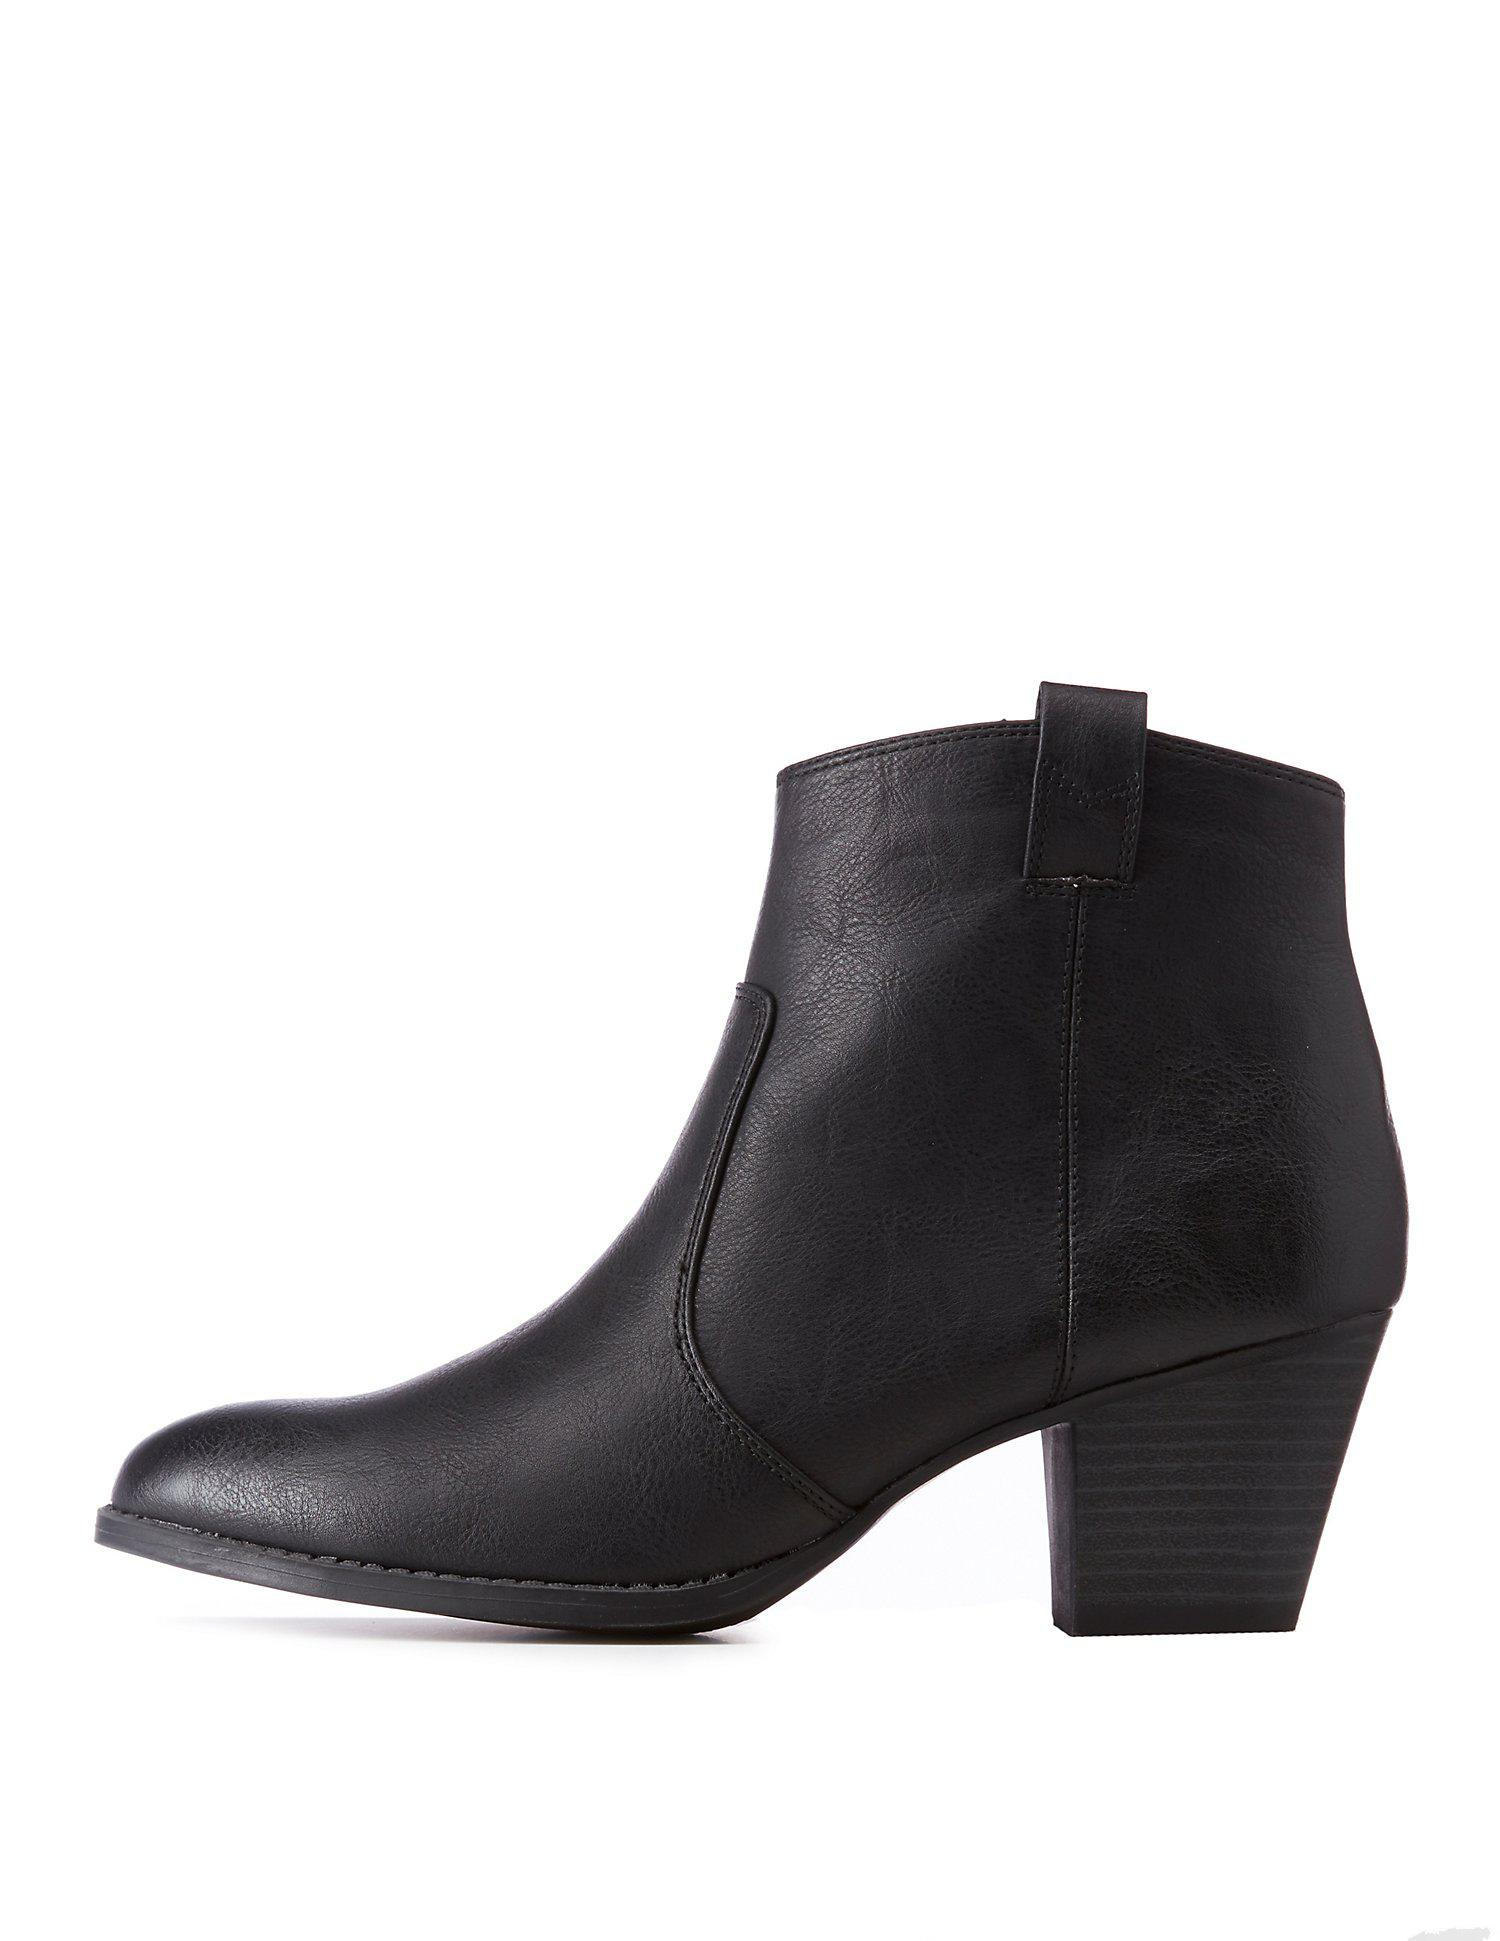 ef6b3427bf1c Lyst - Charlotte Russe Qupid Faux Leather Ankle Booties in Black